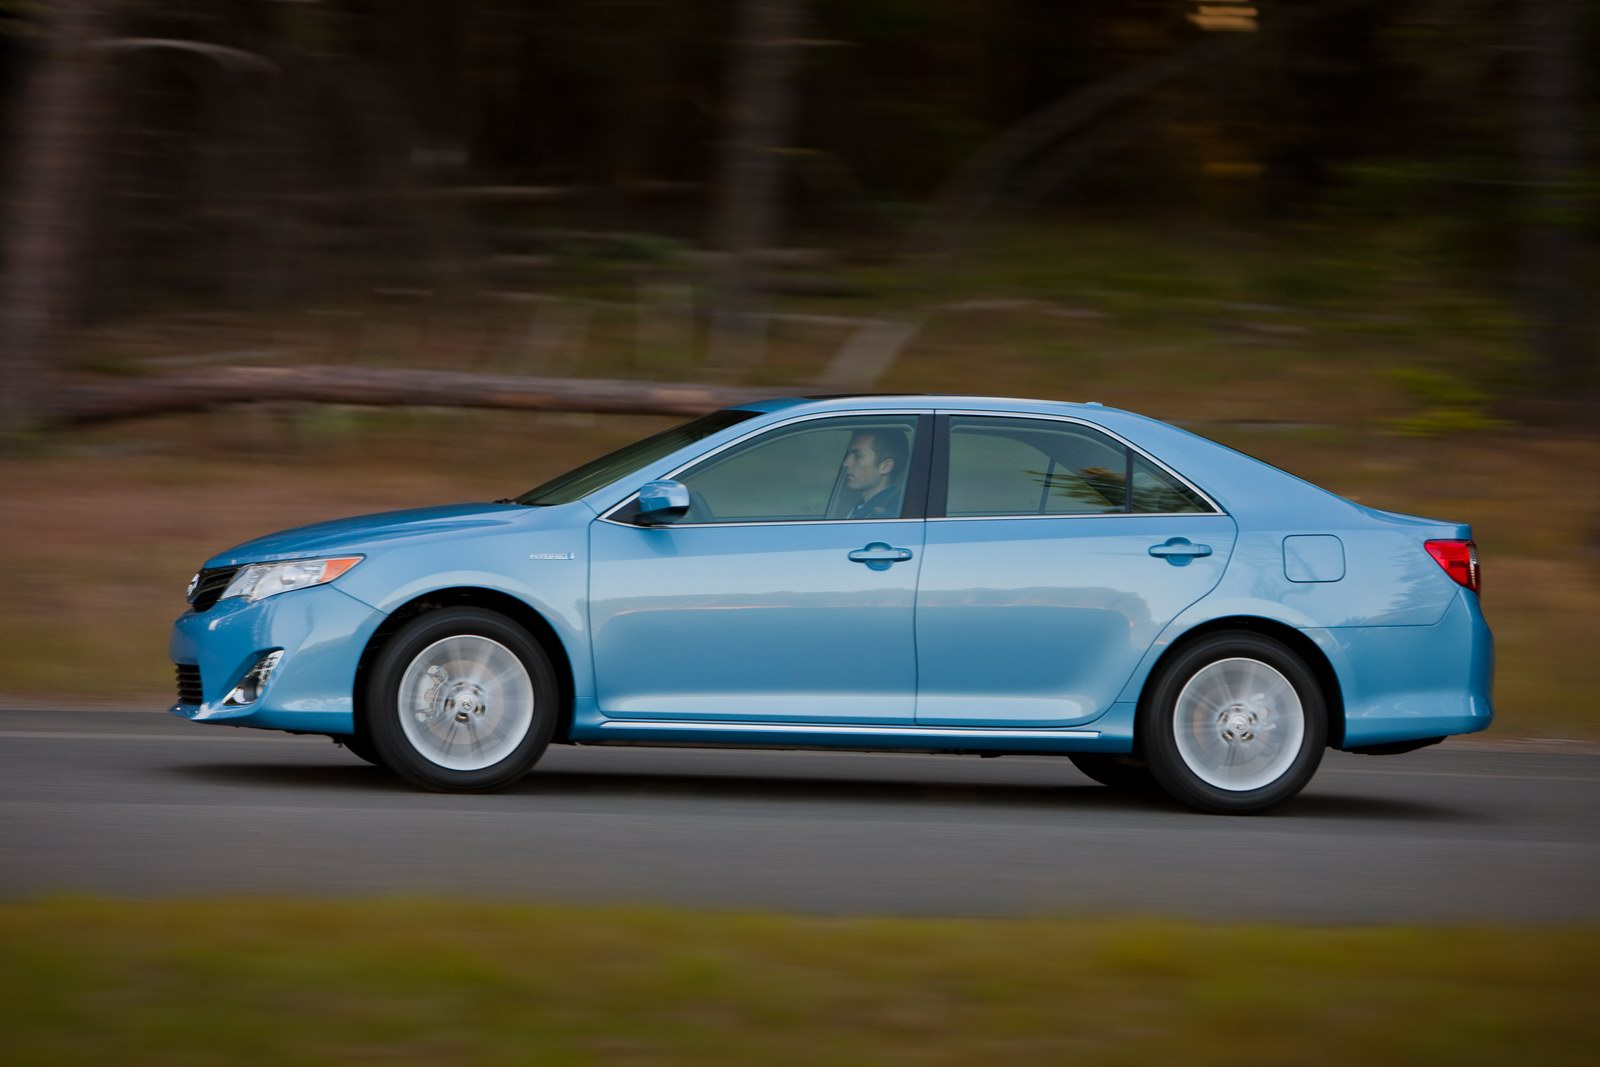 2012_toyota_camry_official_overseas_12b